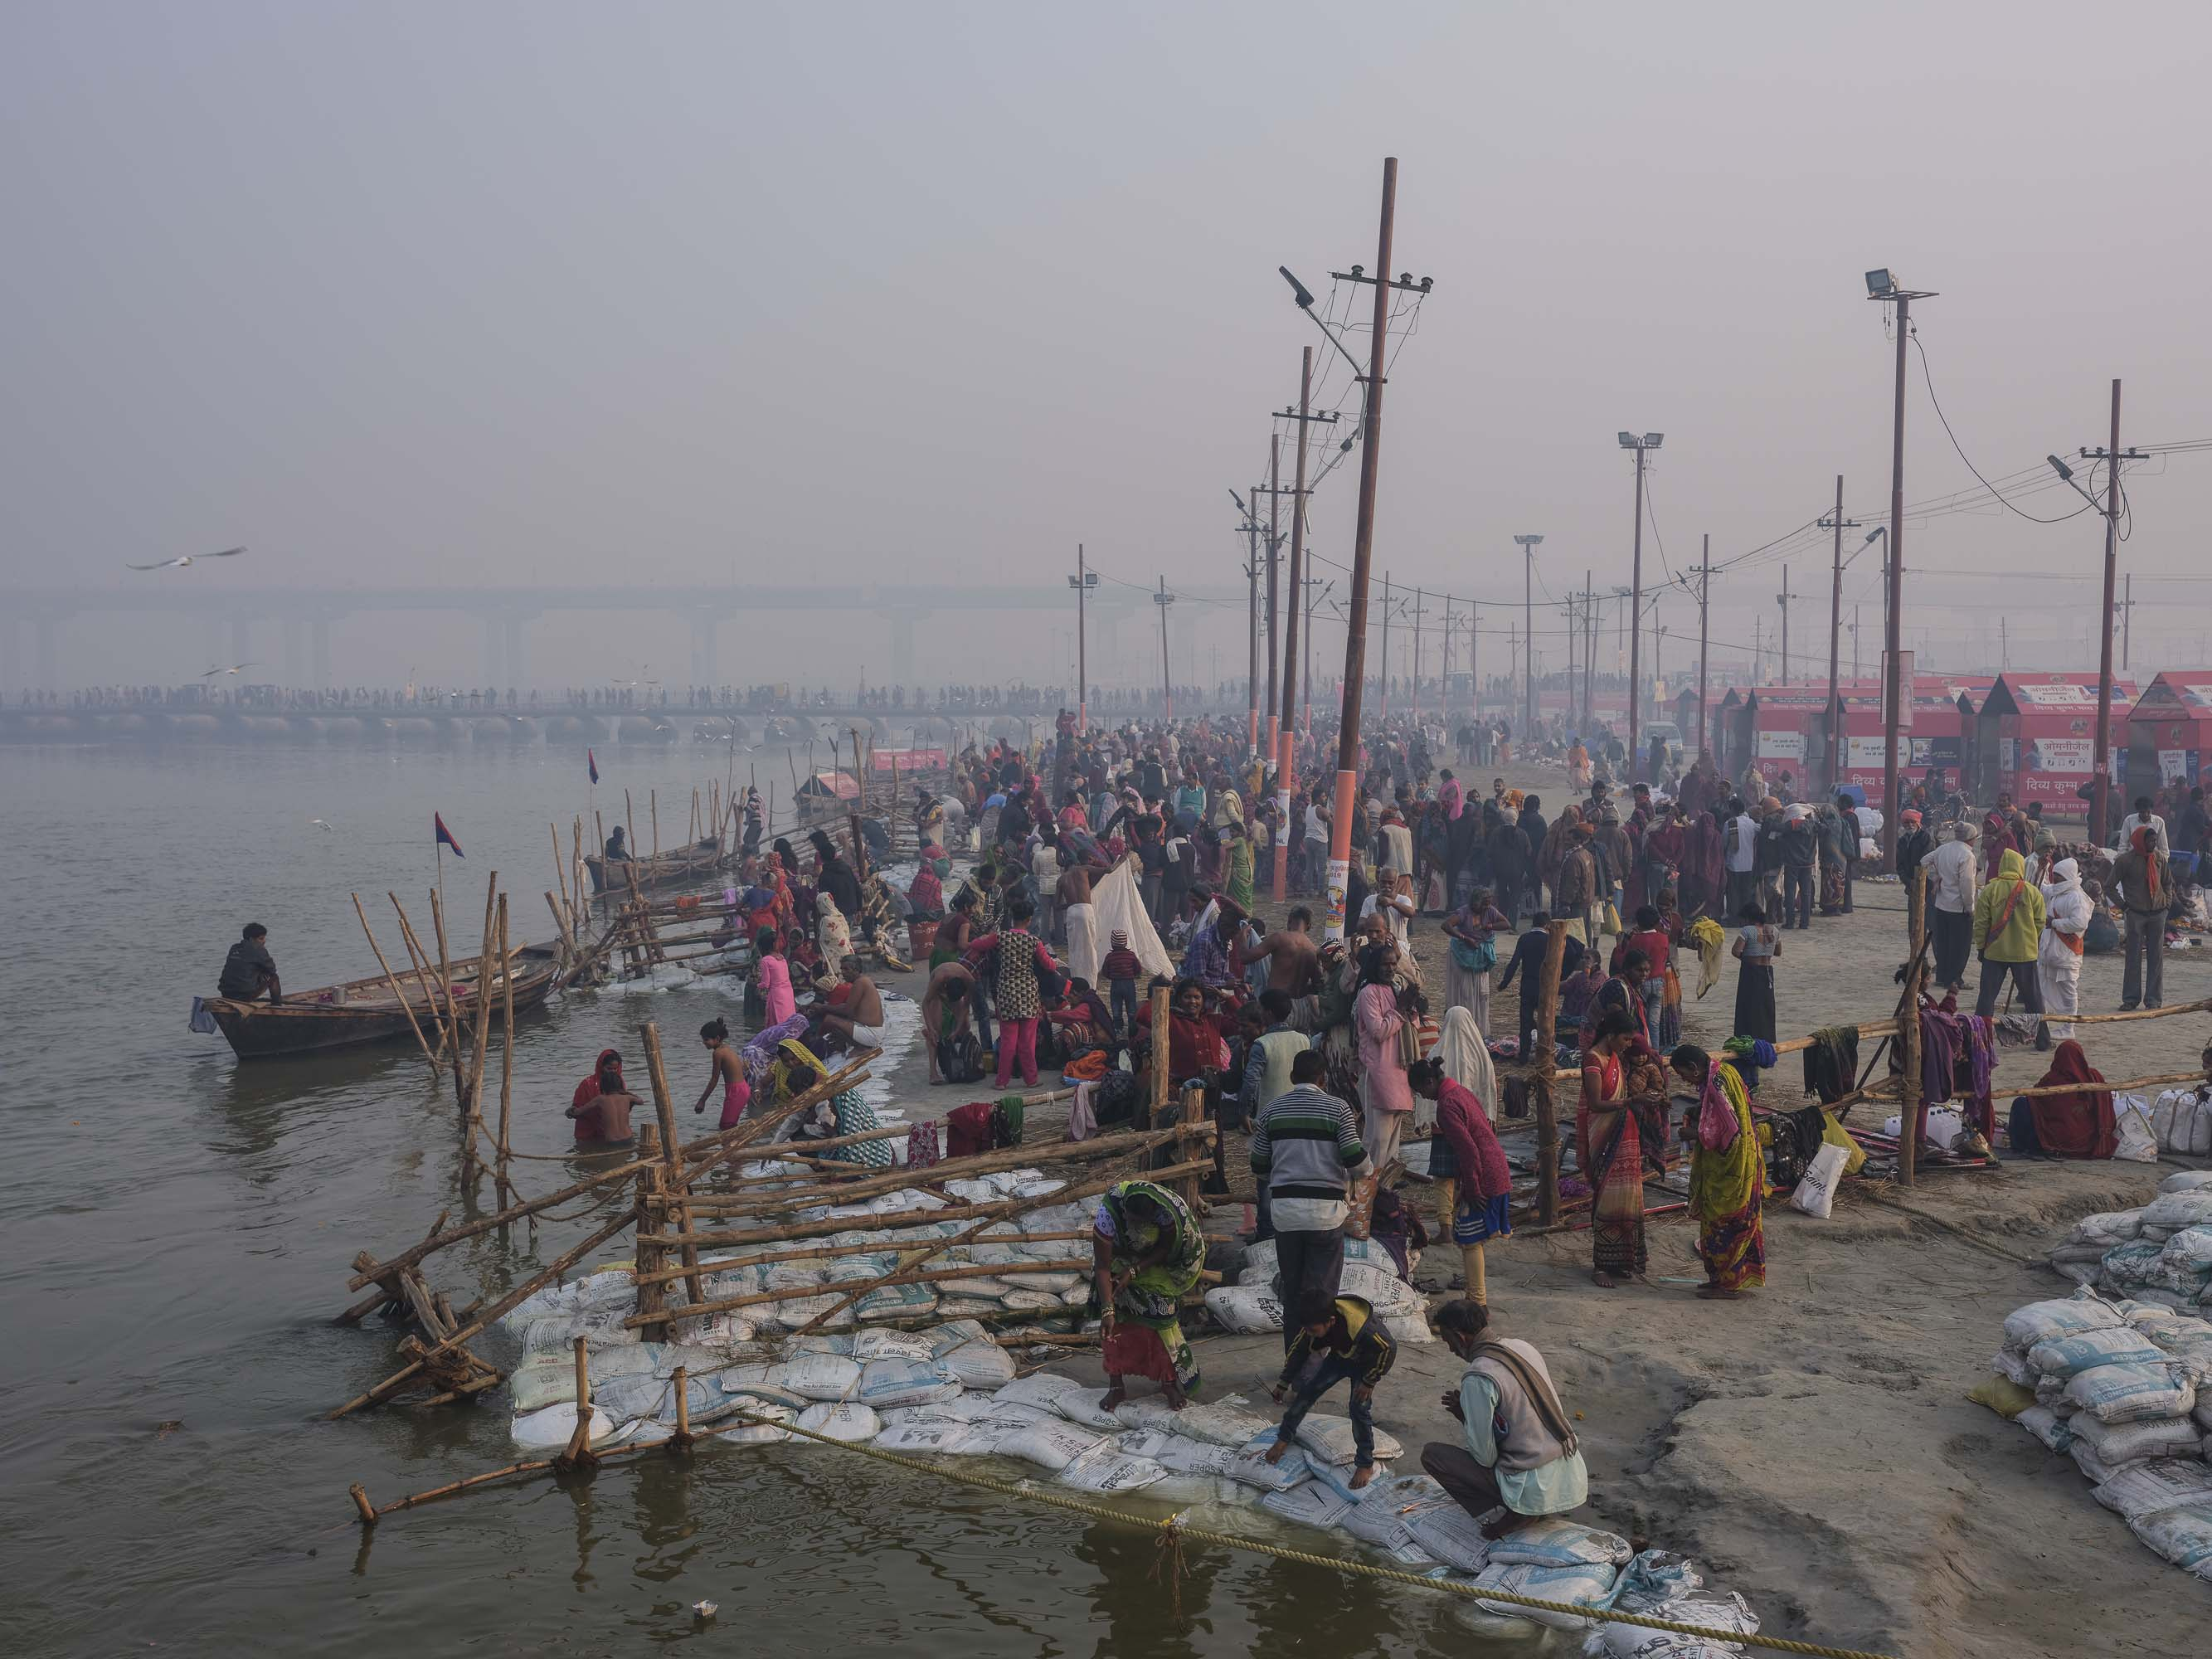 very early morning celebration bath pilgrims Kumbh mela 2019 India Allahabad Prayagraj Ardh hindu religious Festival event rivers photographer jose jeuland photography